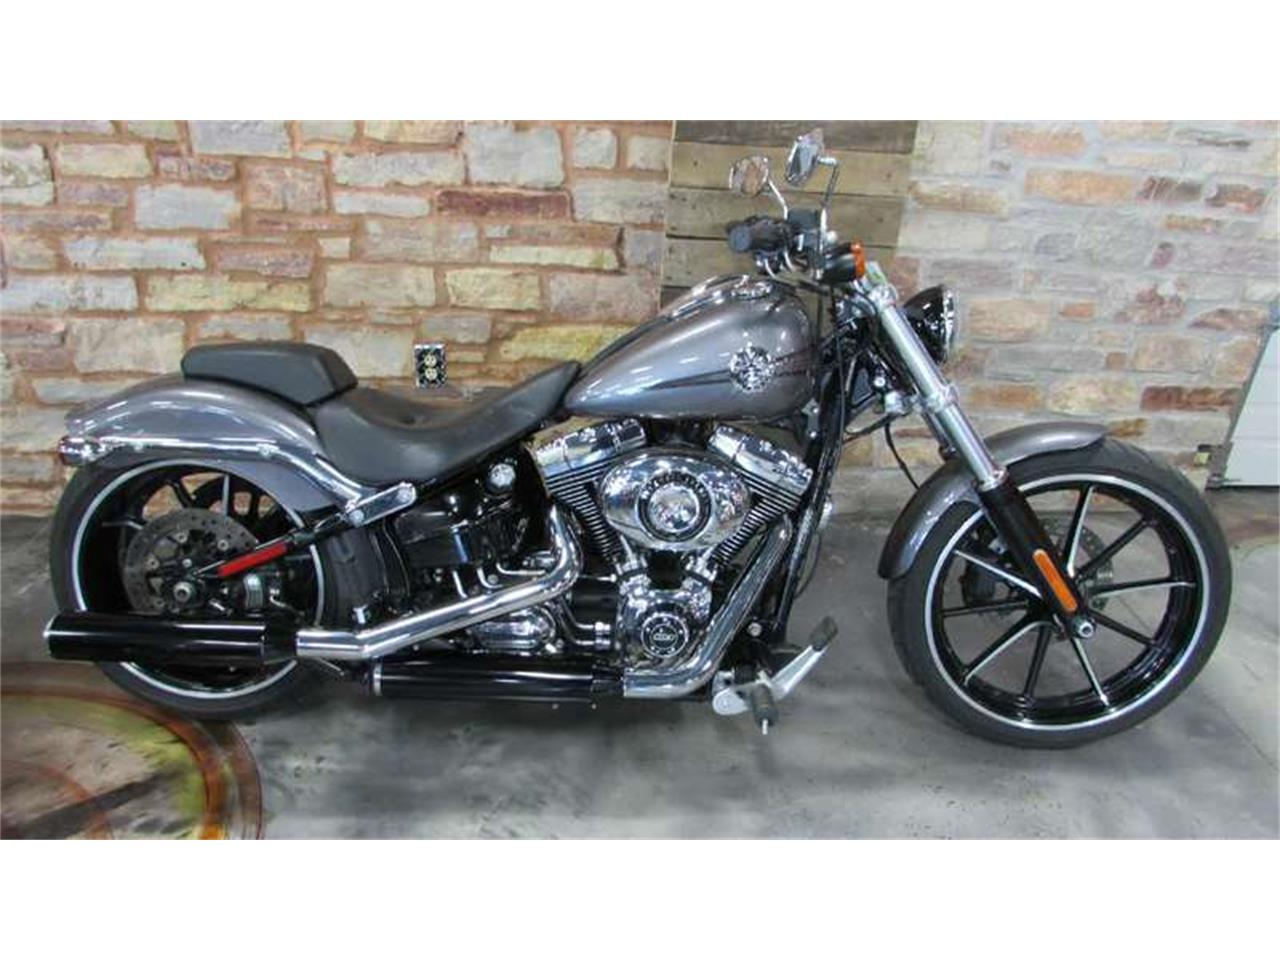 Harley Breakout For Sale >> 2015 Harley Davidson Fxsb Softail Breakout For Sale